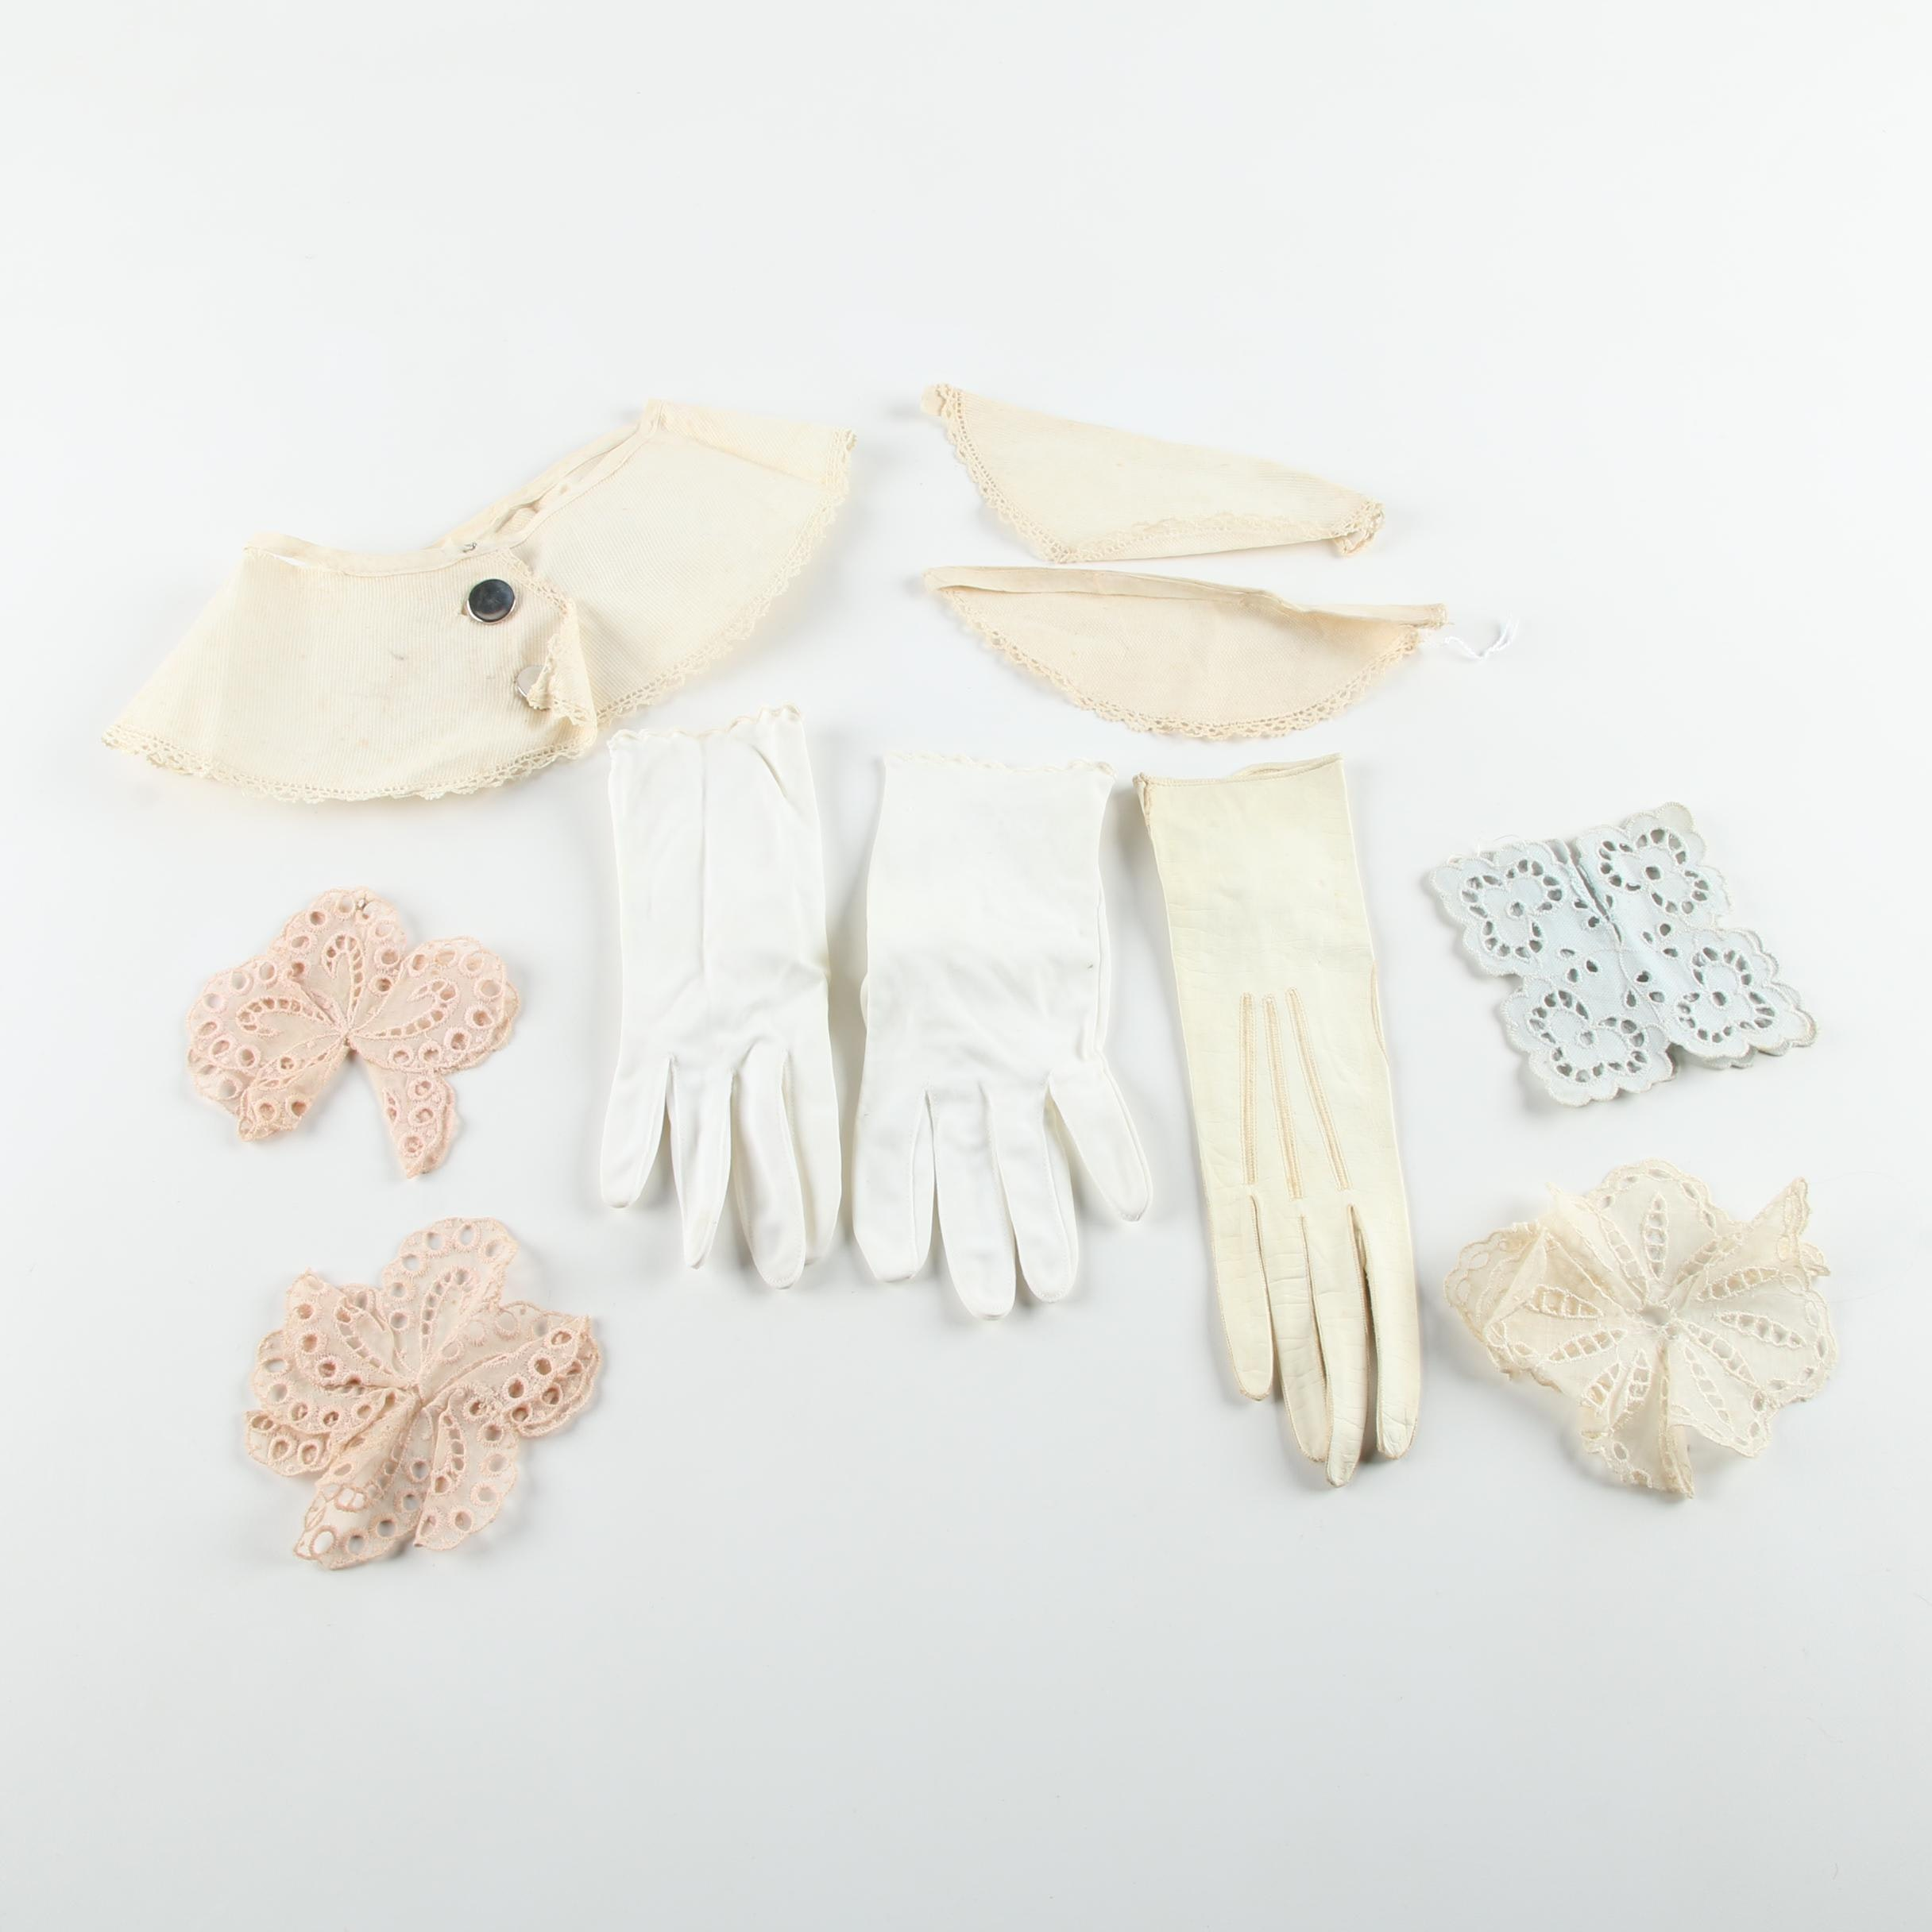 Vintage Accessories and Gloves